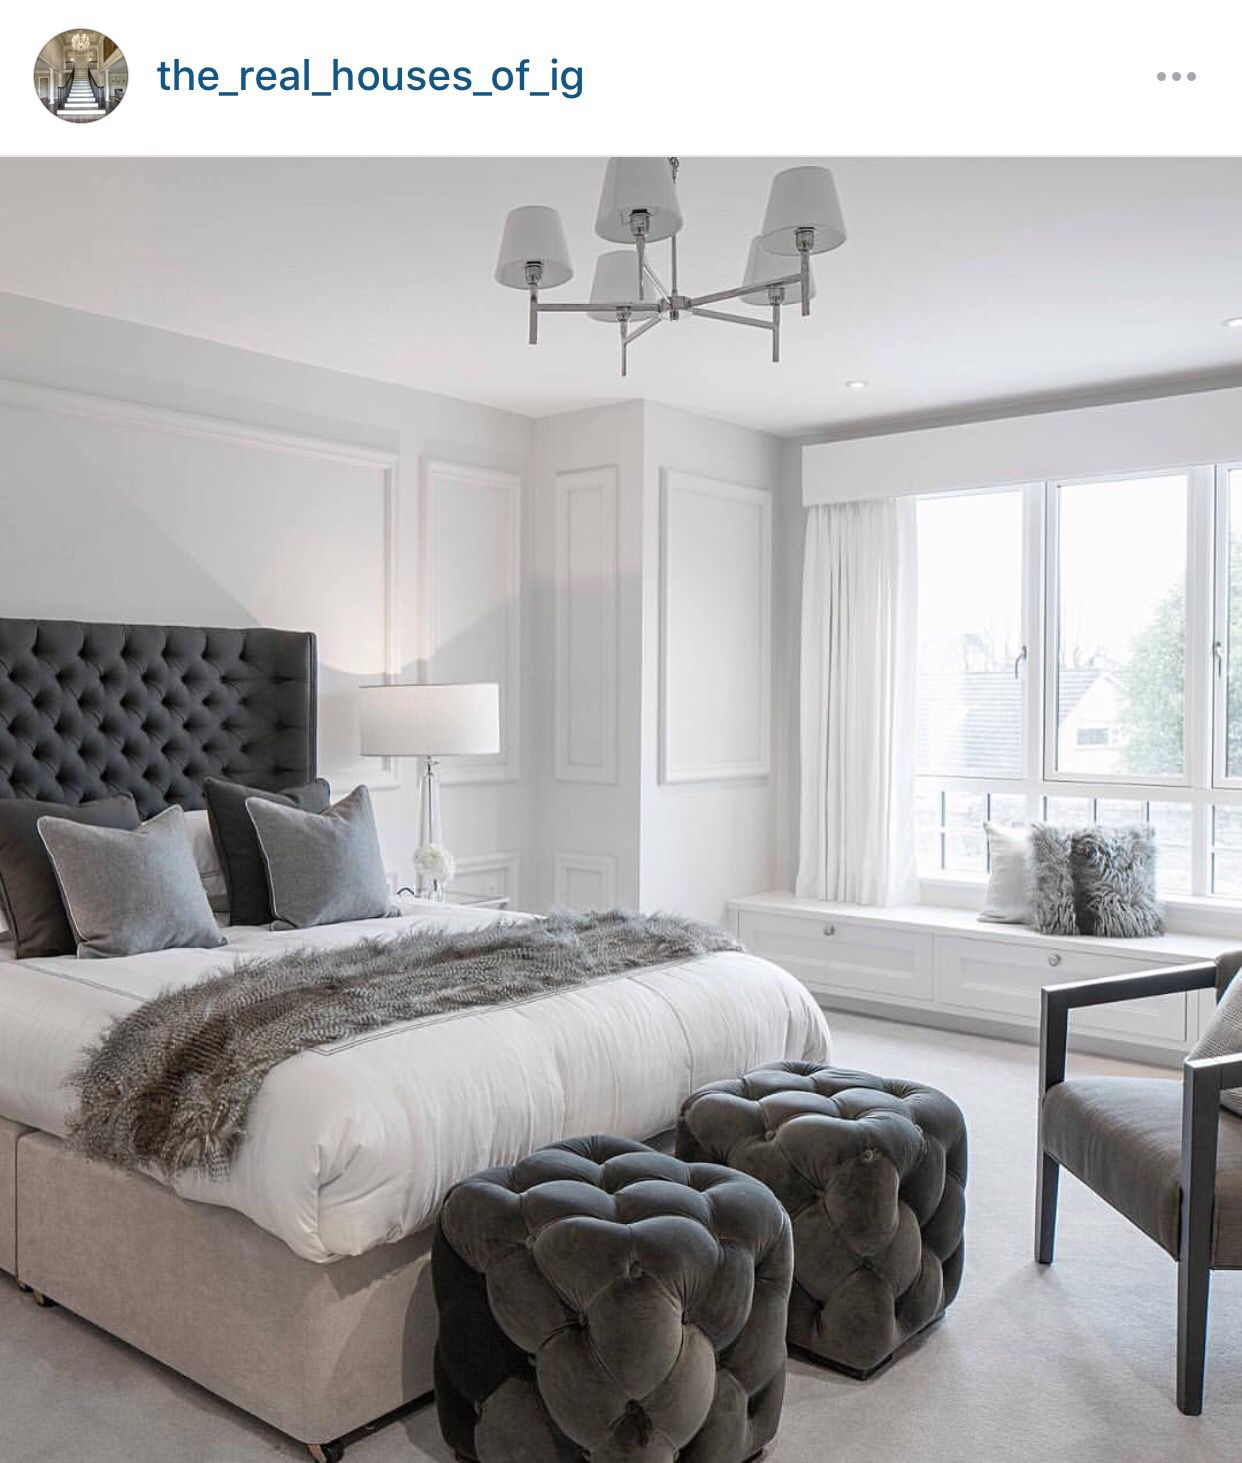 White and Gray bedroom theme in 2019 | Home bedroom, Home ...